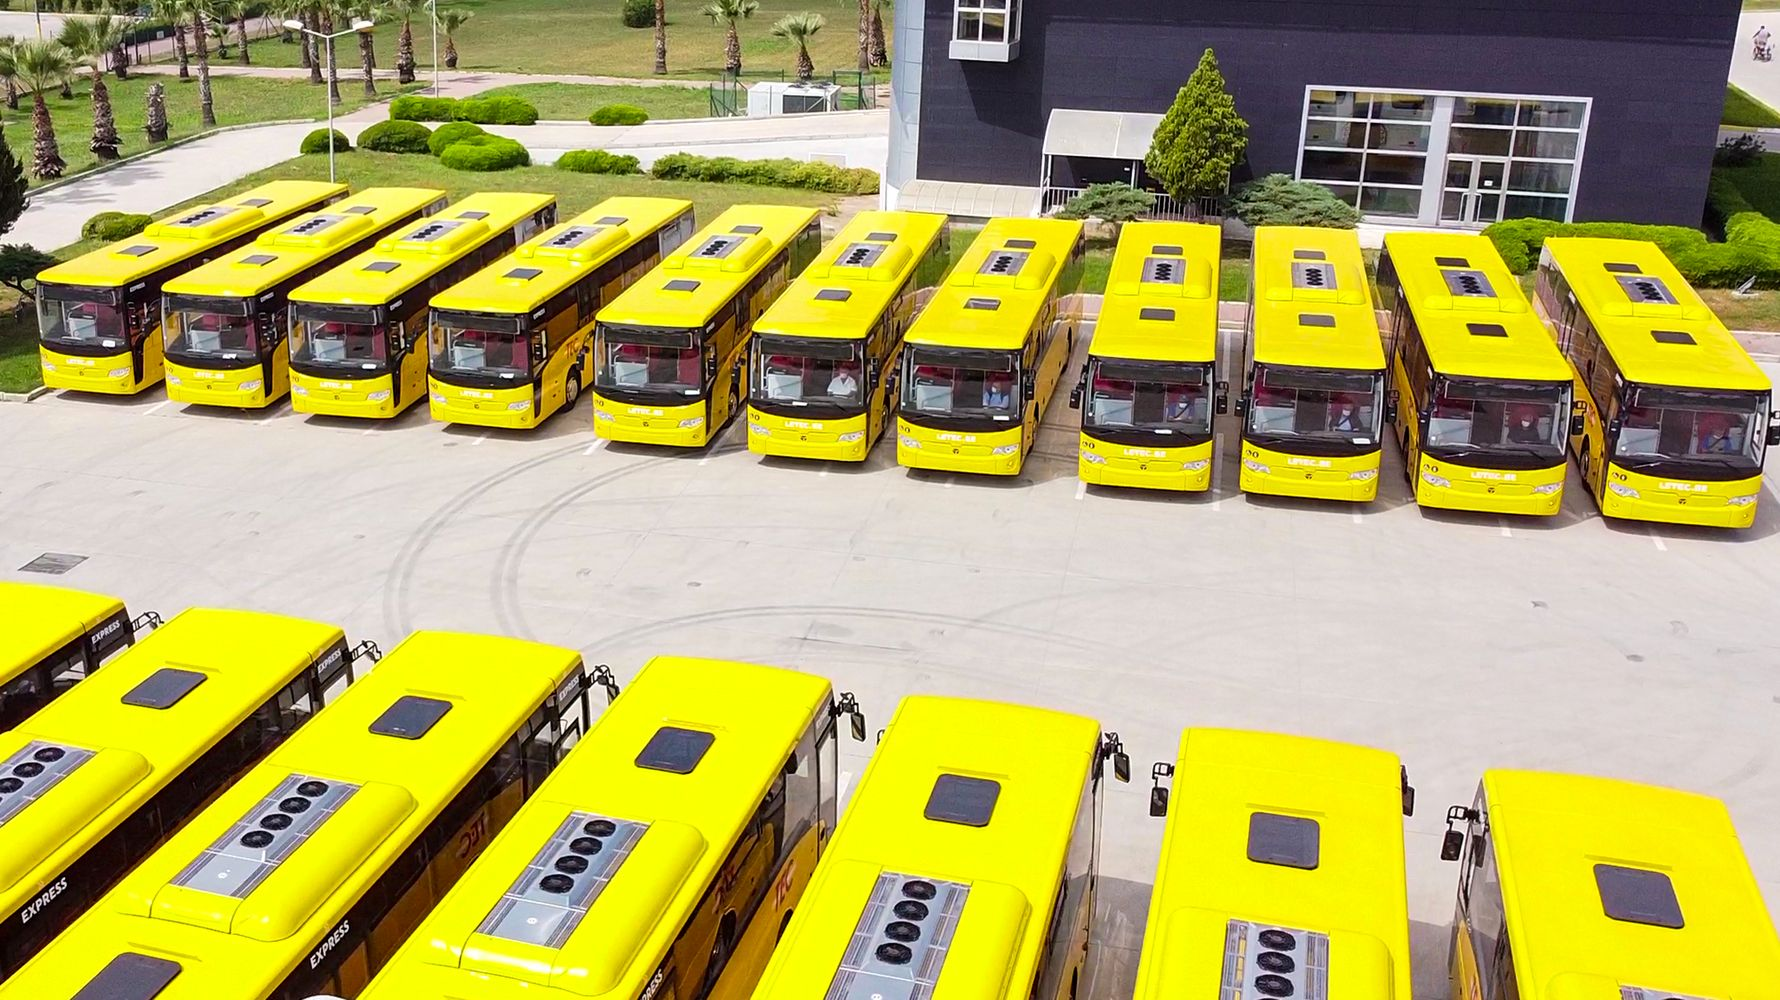 Large bus delivery from temsa to center of europe